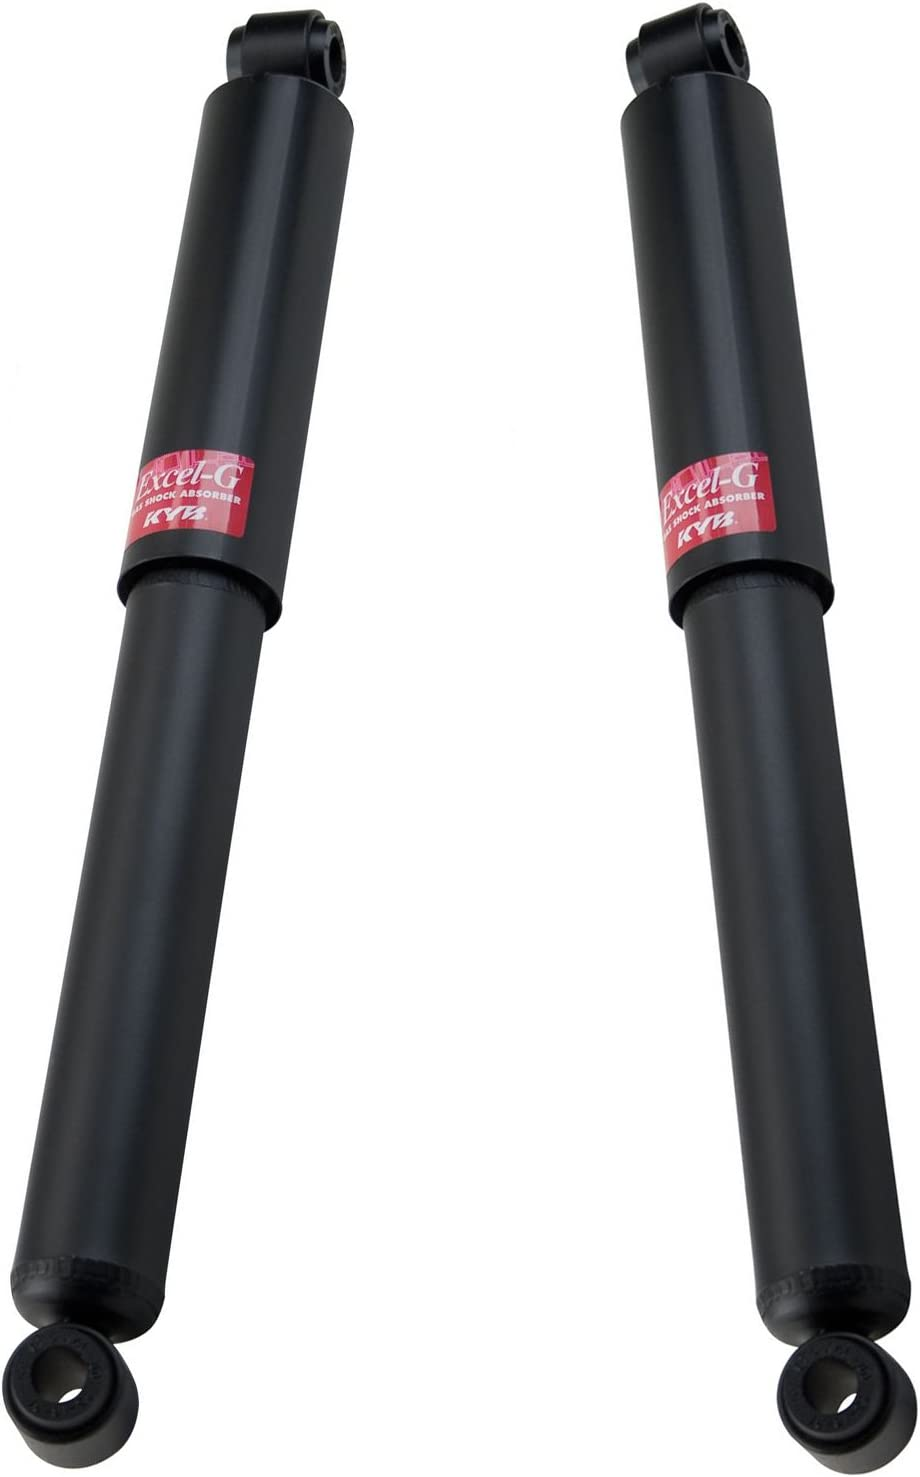 KYB 2 Excel-G Rear Left /& Right Struts for Subaru Legacy Outback 1995 to 1999